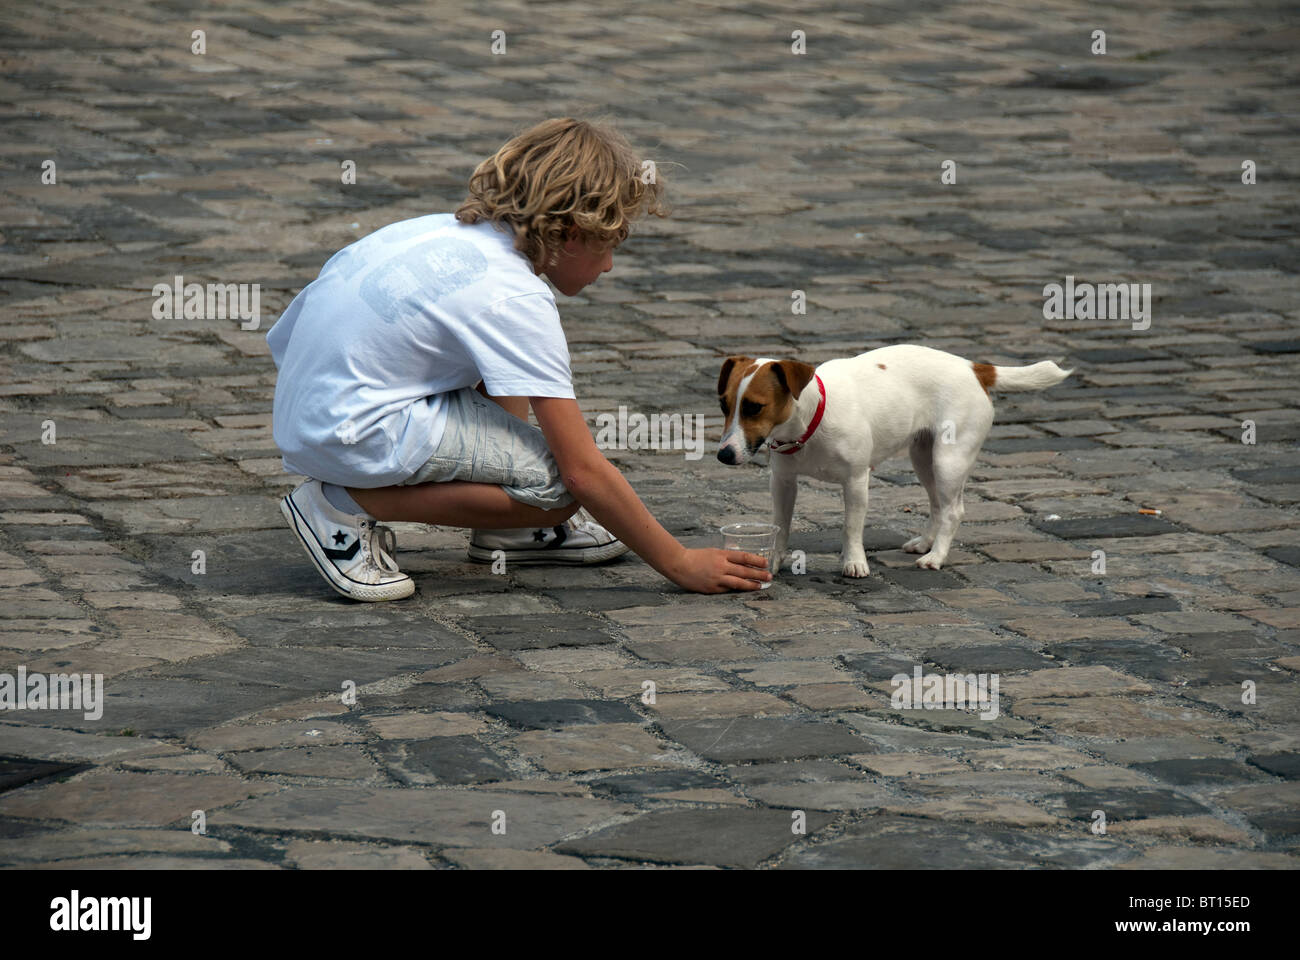 Man's best friend: boy gives dog a cup of water on a hot day in Italy - Stock Image